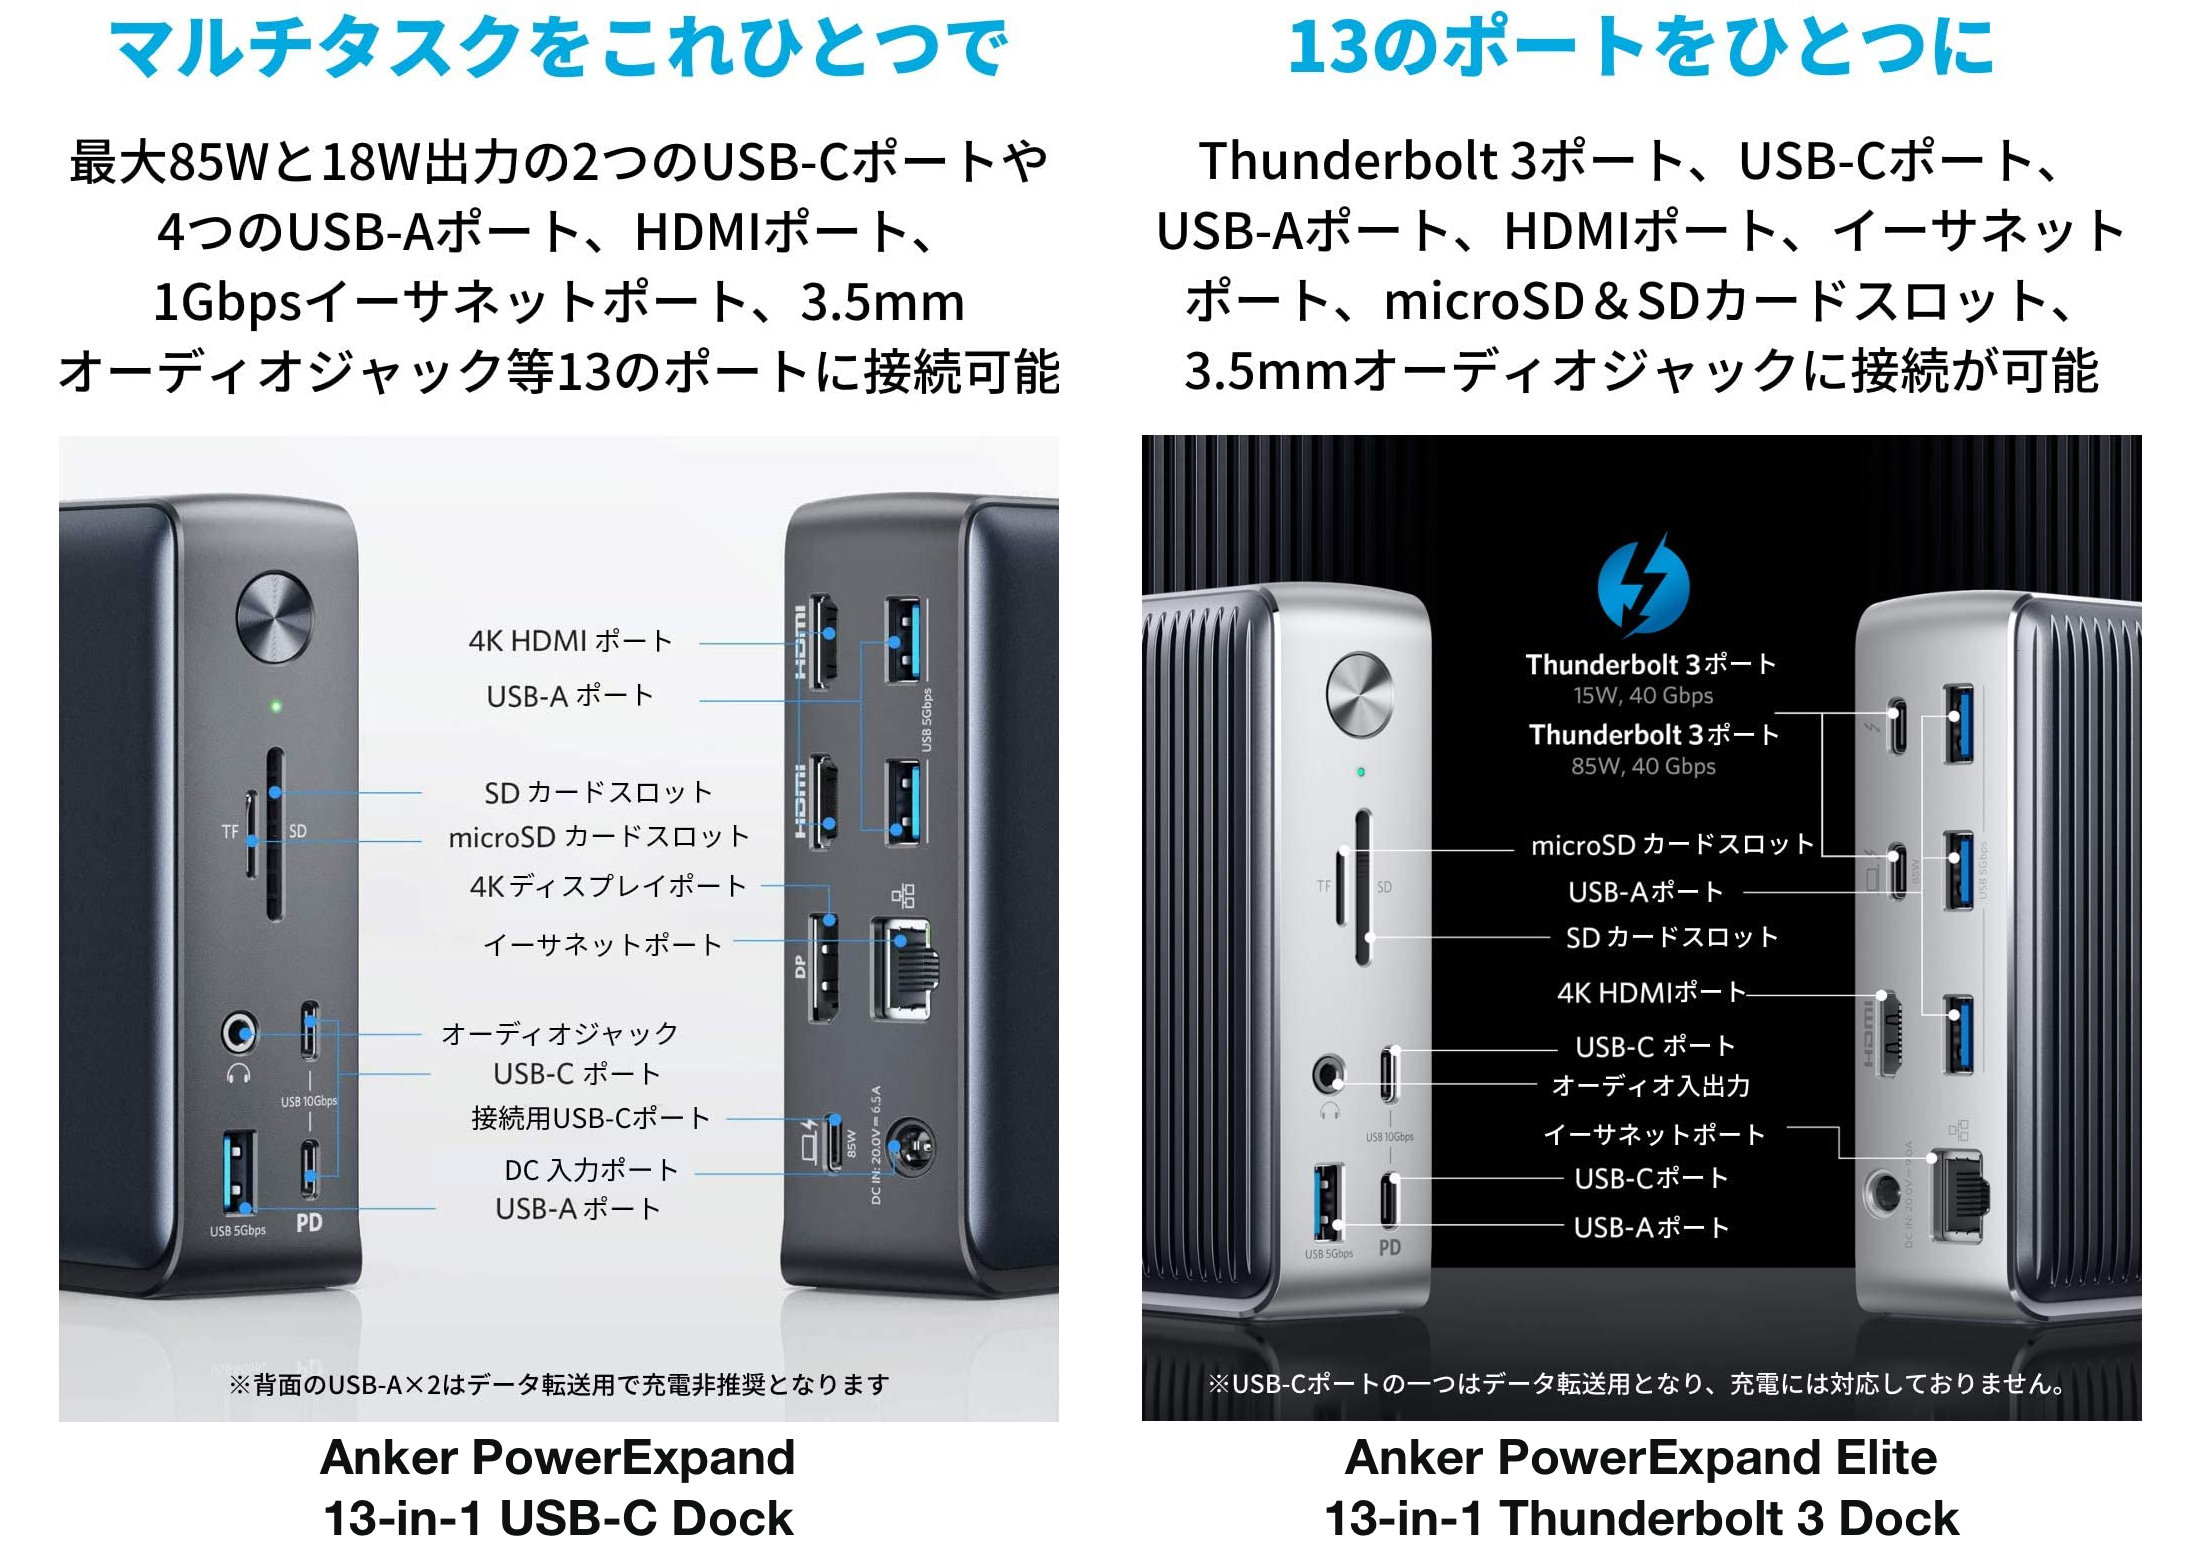 Anker PowerExpand Elite 13-in-1 USB-C Thunderbolt 3 Dockのポート